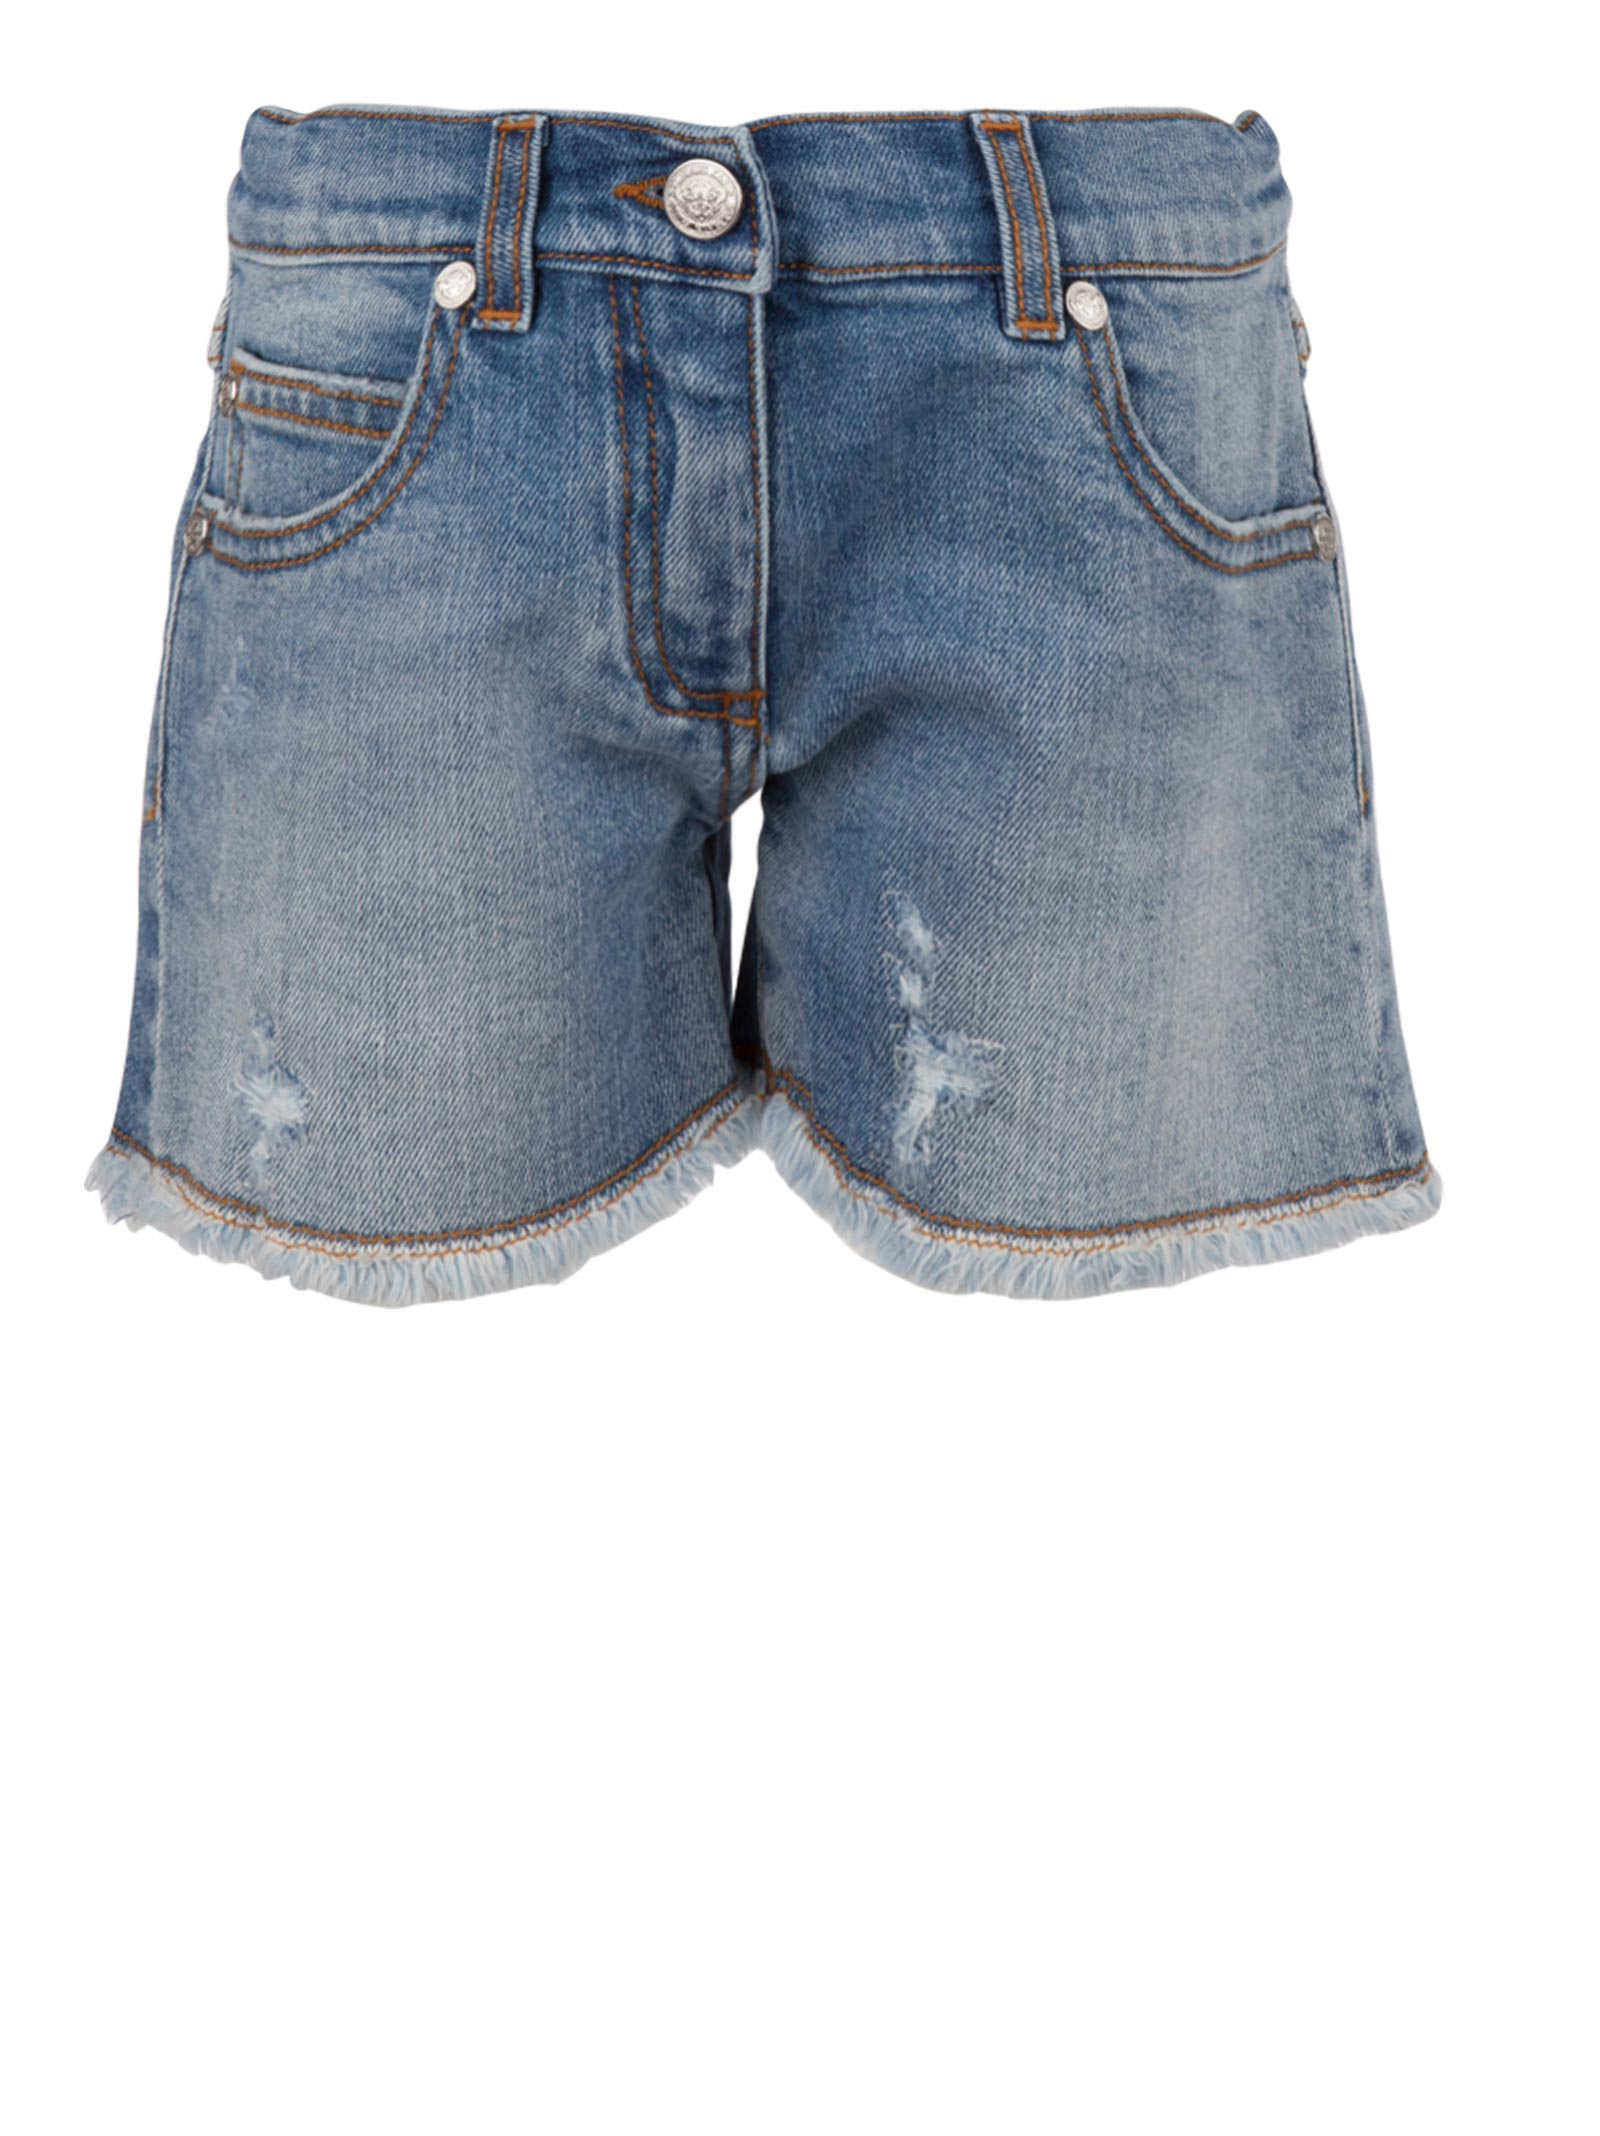 5e532e6bb Balmain paris kids shorts - BALMAIN PARIS KIDS - Michele Franzese Moda